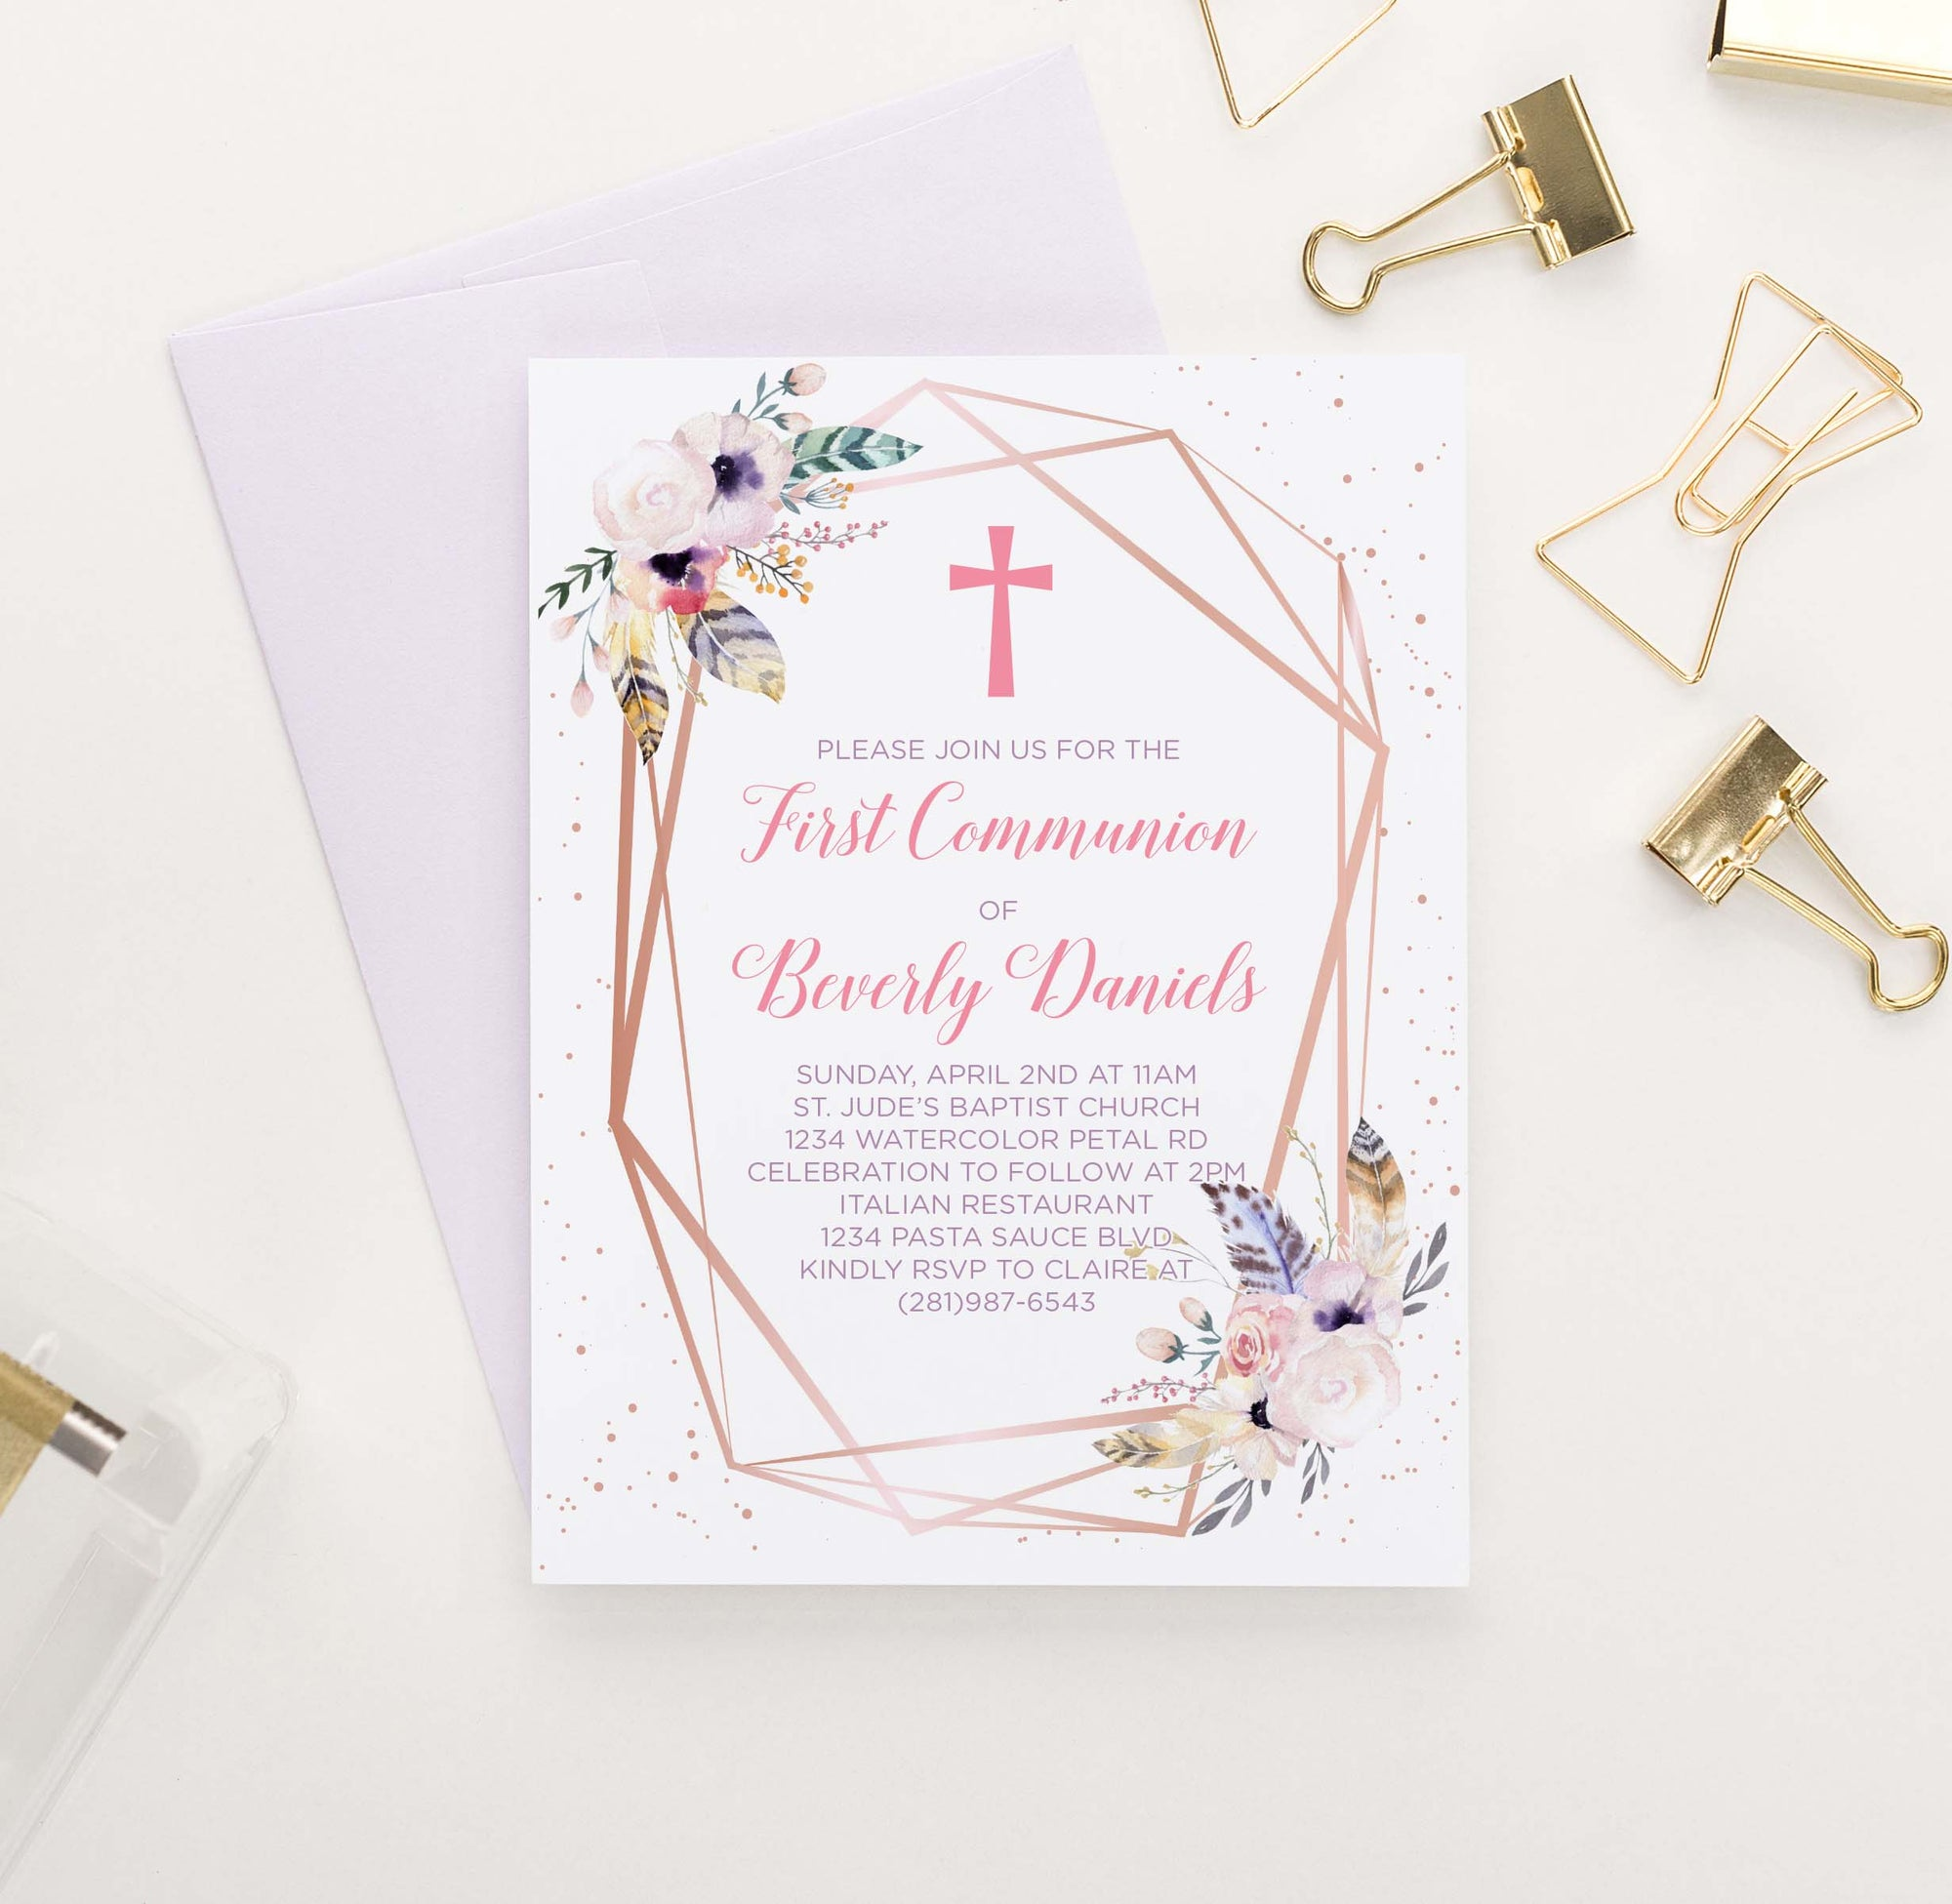 FCI011 bohemian floral first communion invitations rose gold rustic feather florals